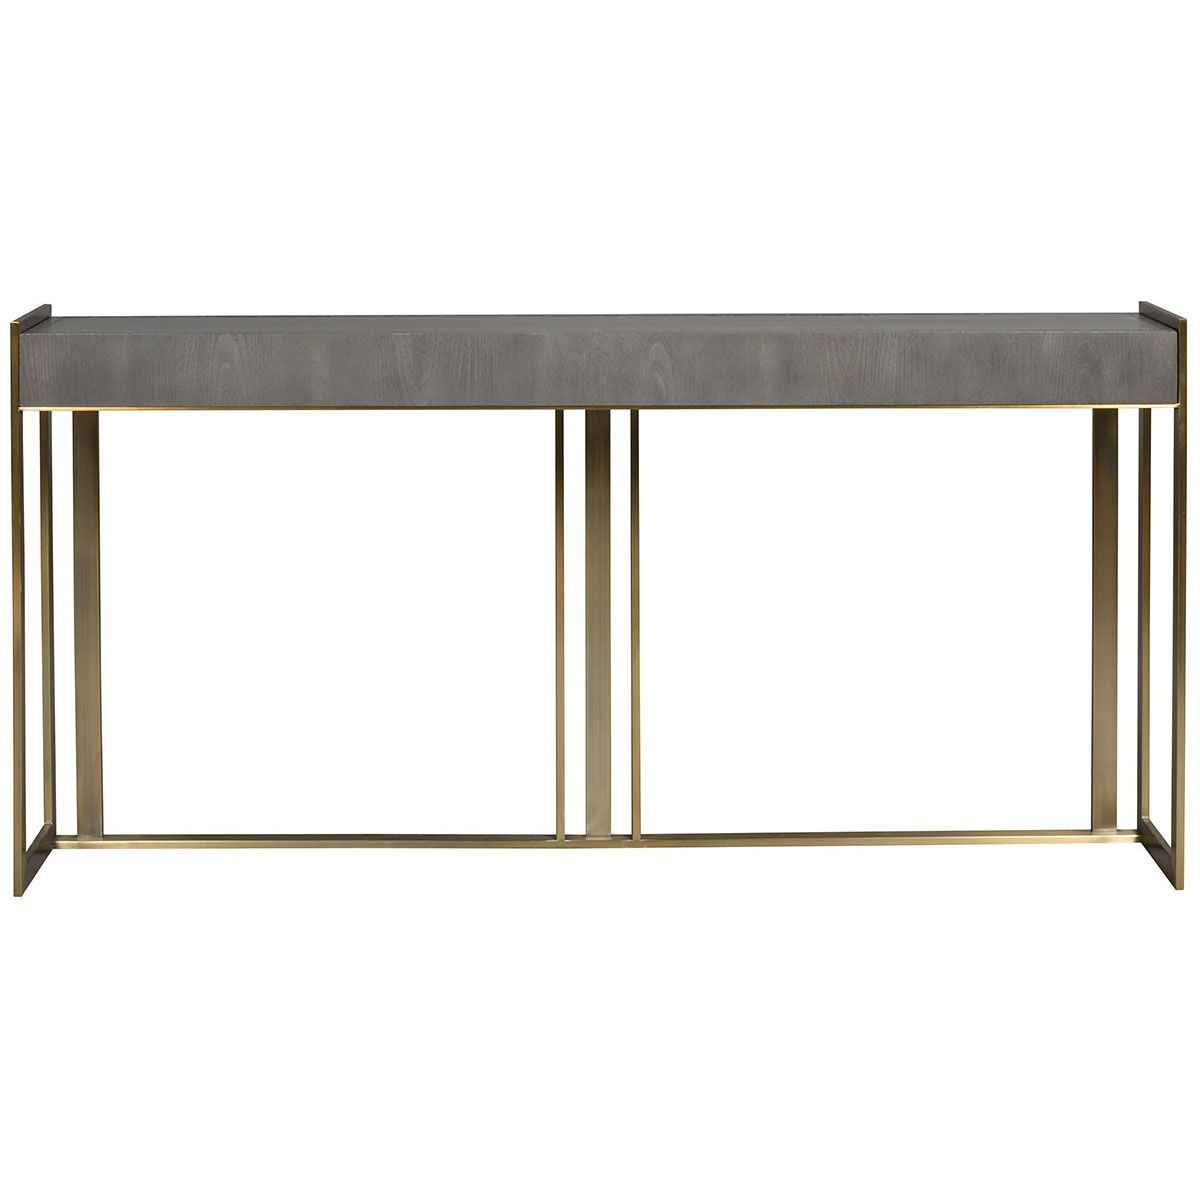 Shop For Vanguard Wallace Console, And Other Living Room Tables At Hickory  Furniture Mart In Hickory, NC. Personalized Finish Options Available.